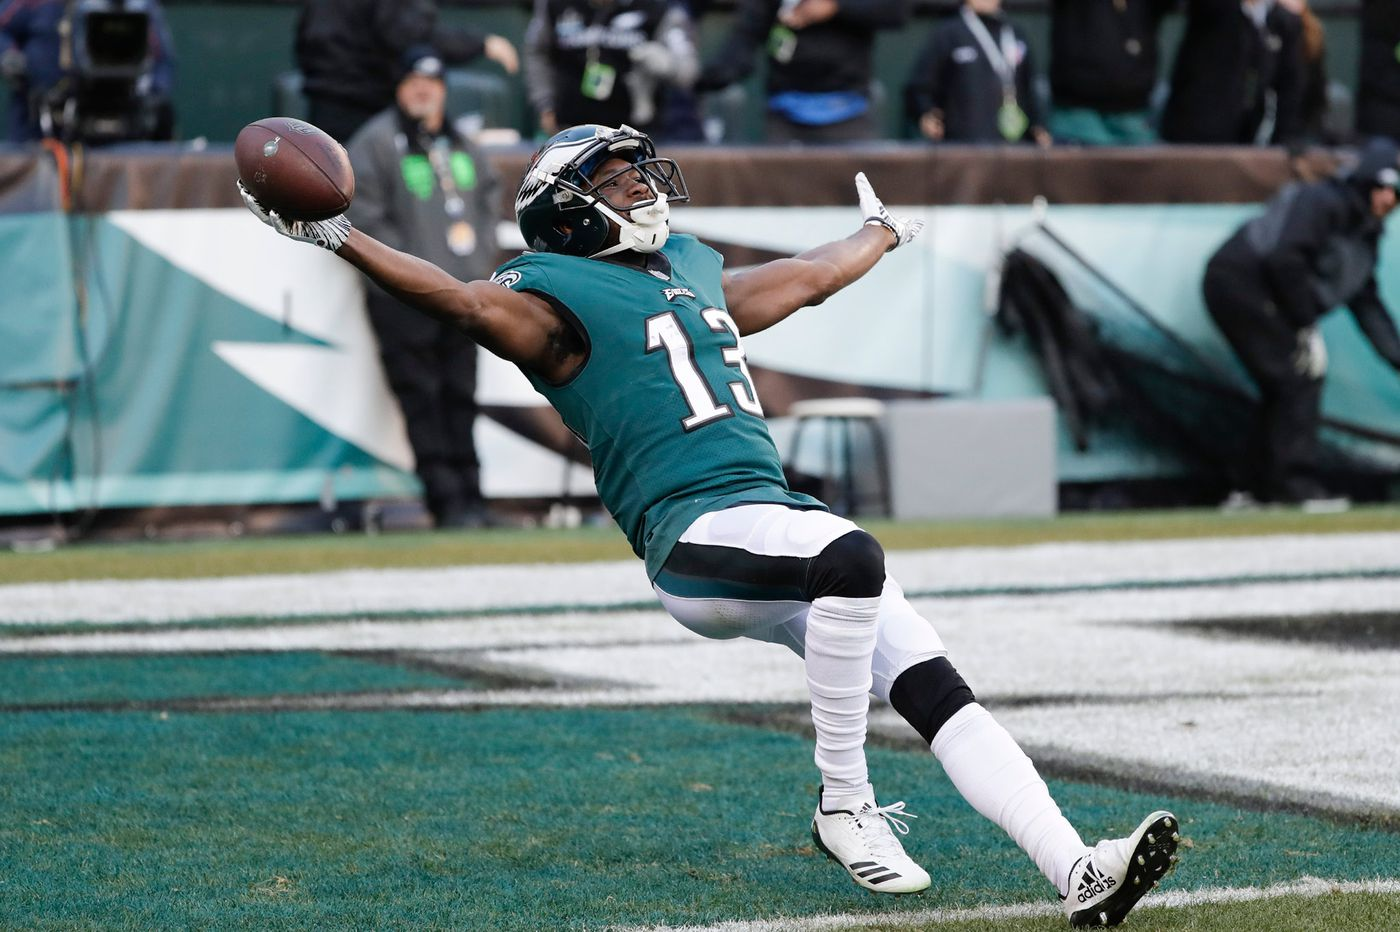 Grading the Eagles: Nick Foles, pass offense earn 'A' in win over Texans | Paul Domowitch